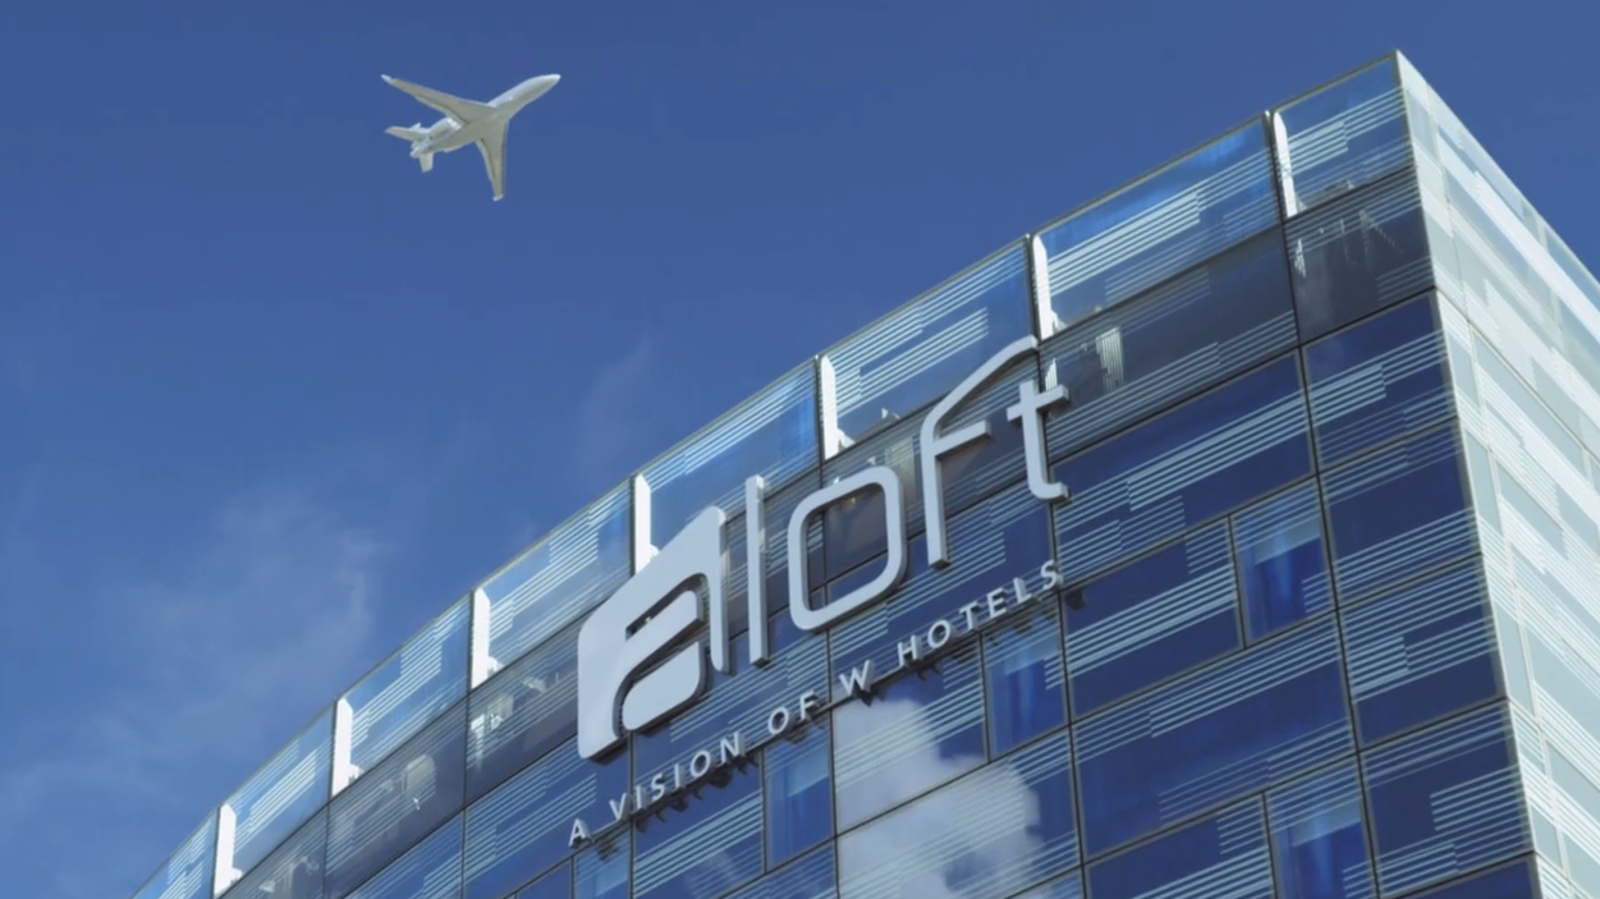 aloft london excel near to london city airport